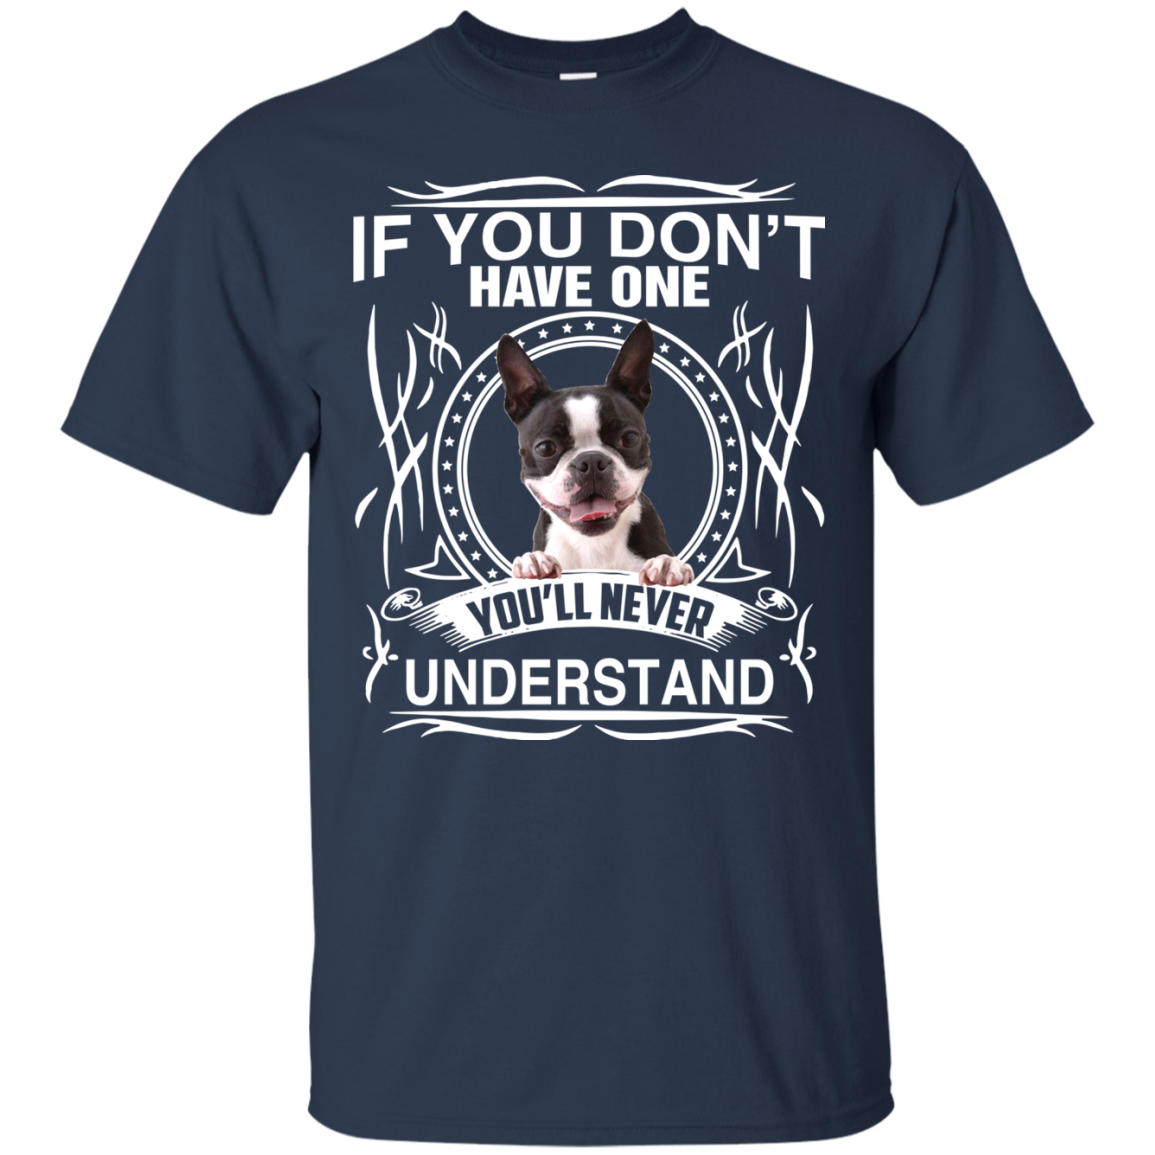 Boston Terrier T shirts You Don't Have One You'll Never Understand Hoodies Sweatshirts